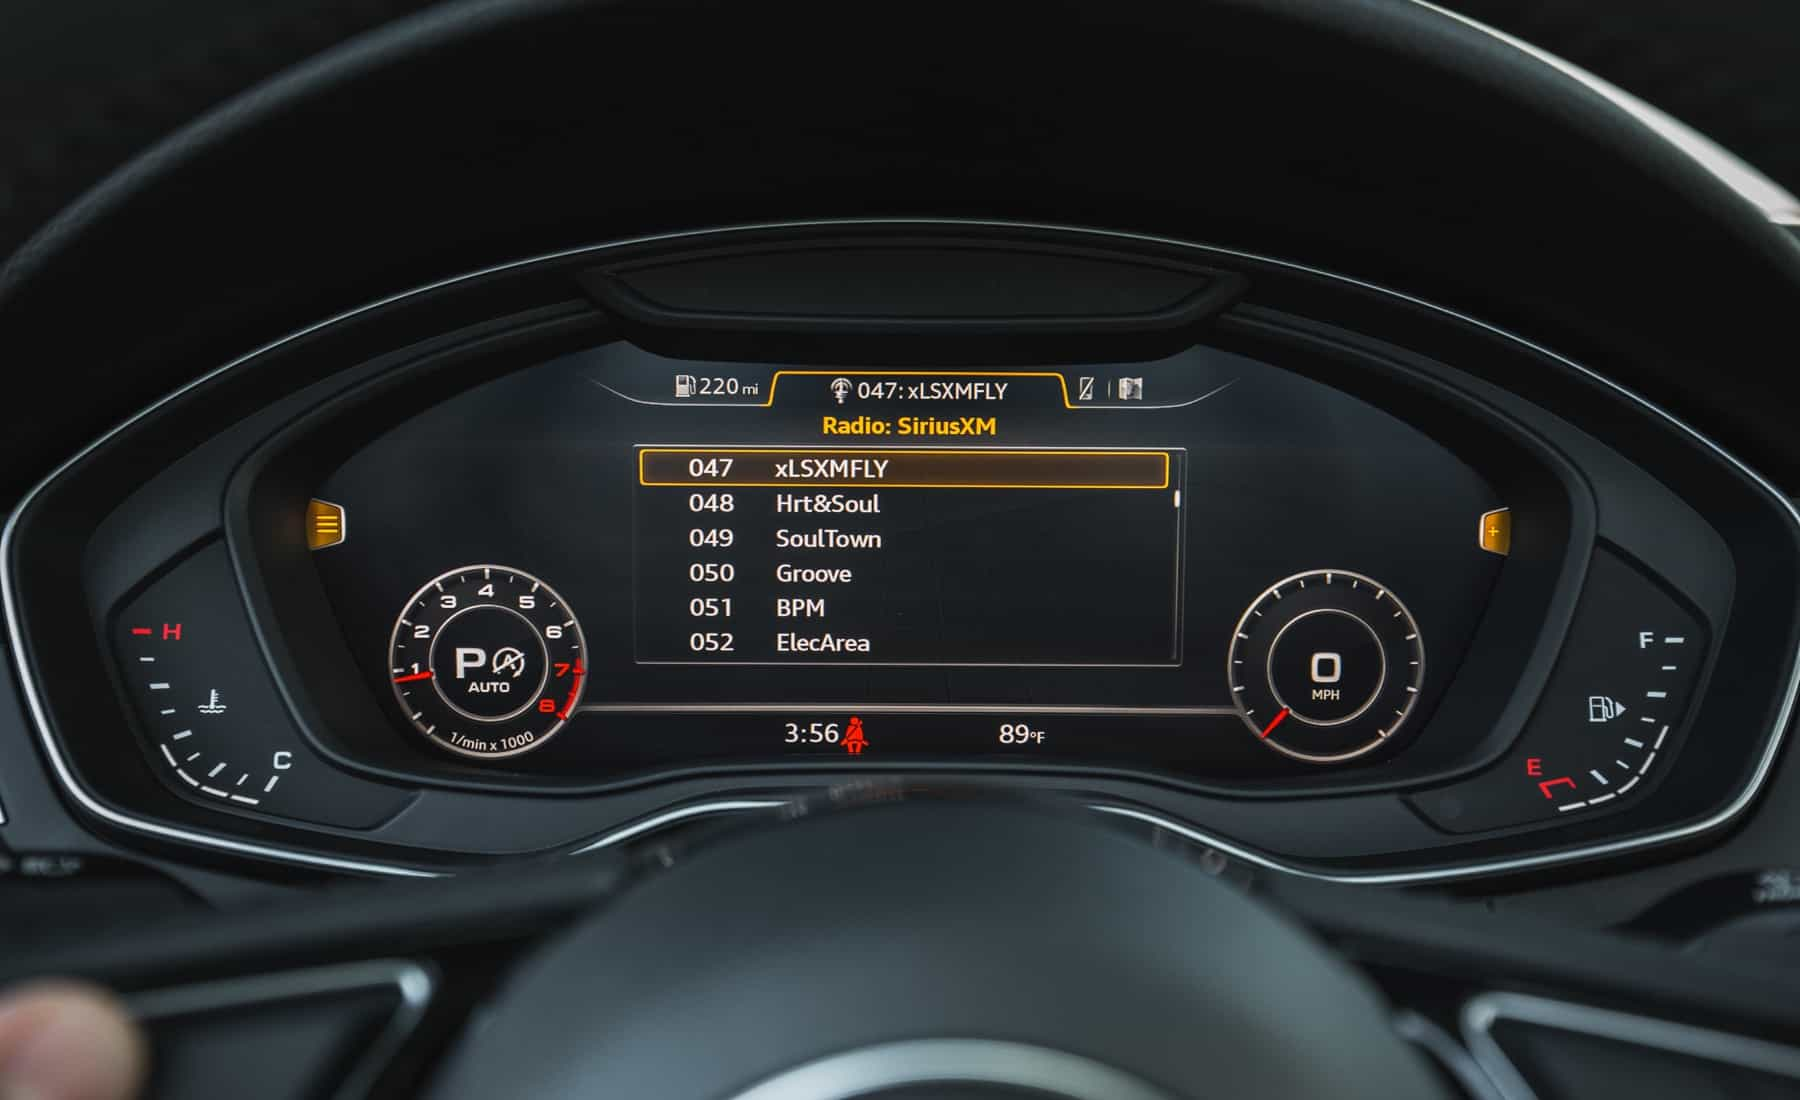 2018 Audi A5 Cabriolet Interior View Instrument Cluster (Photo 15 of 45)